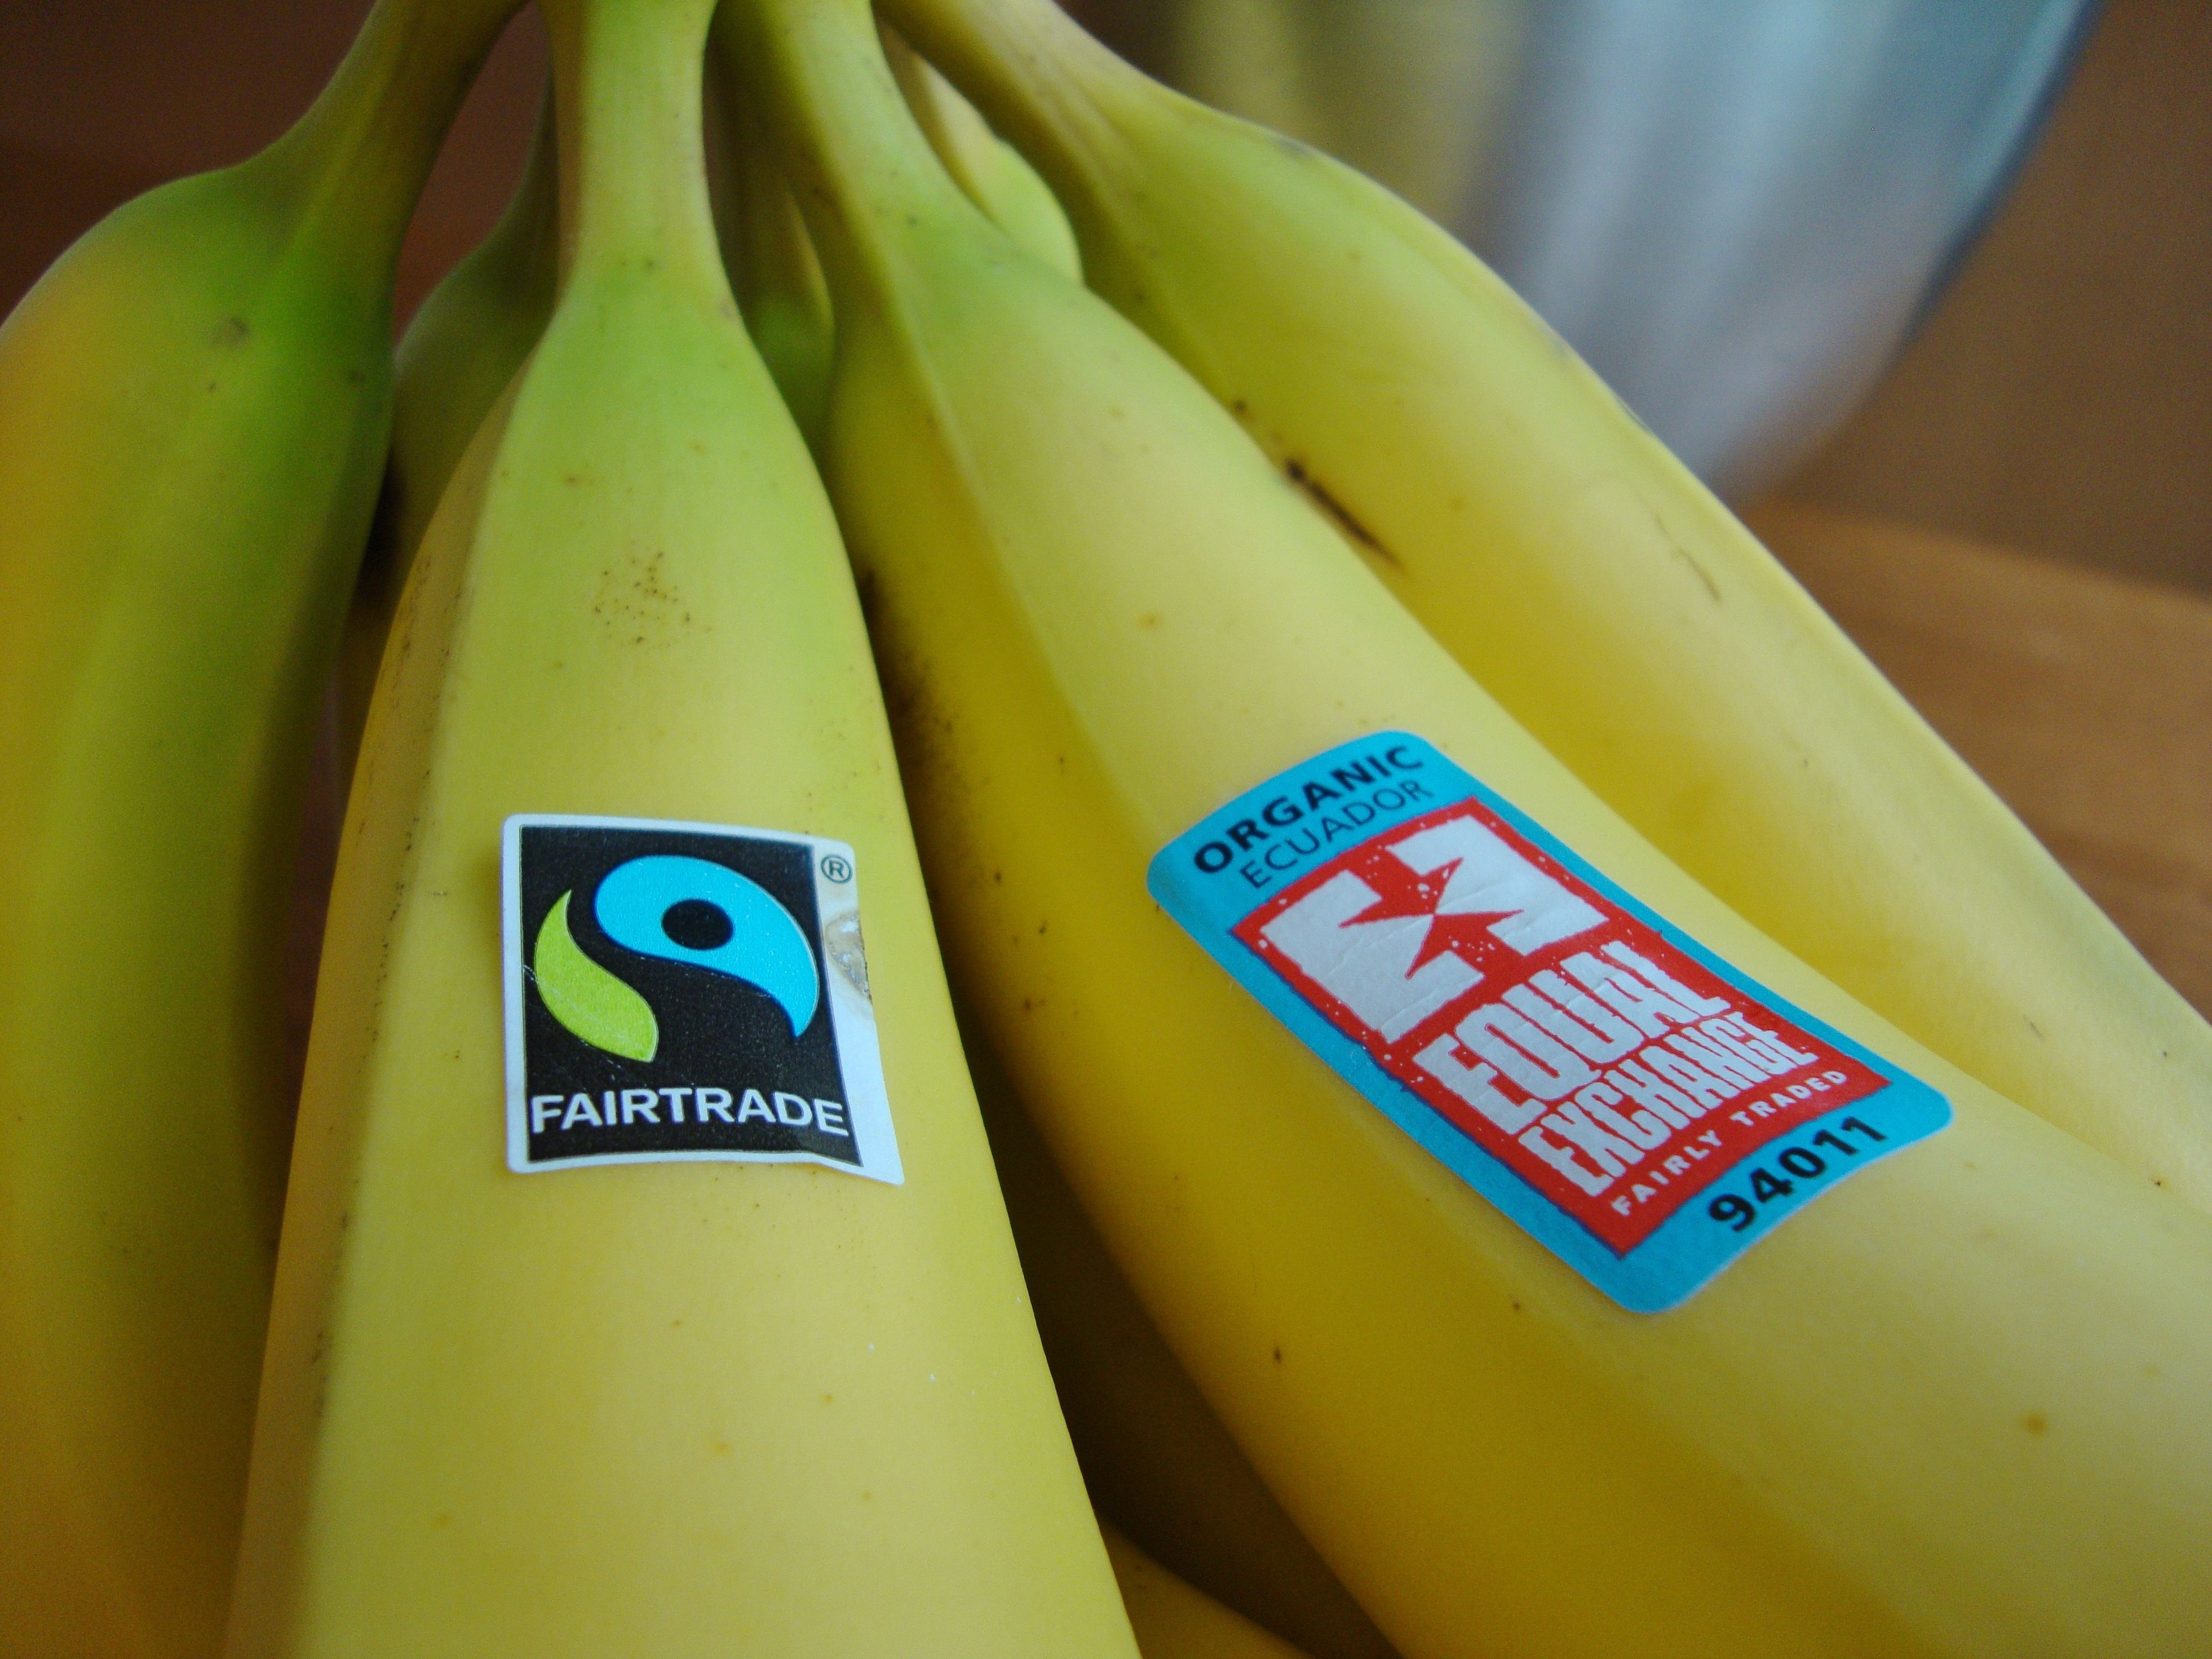 Save money and make your baked goods healthier by baking with bananas.